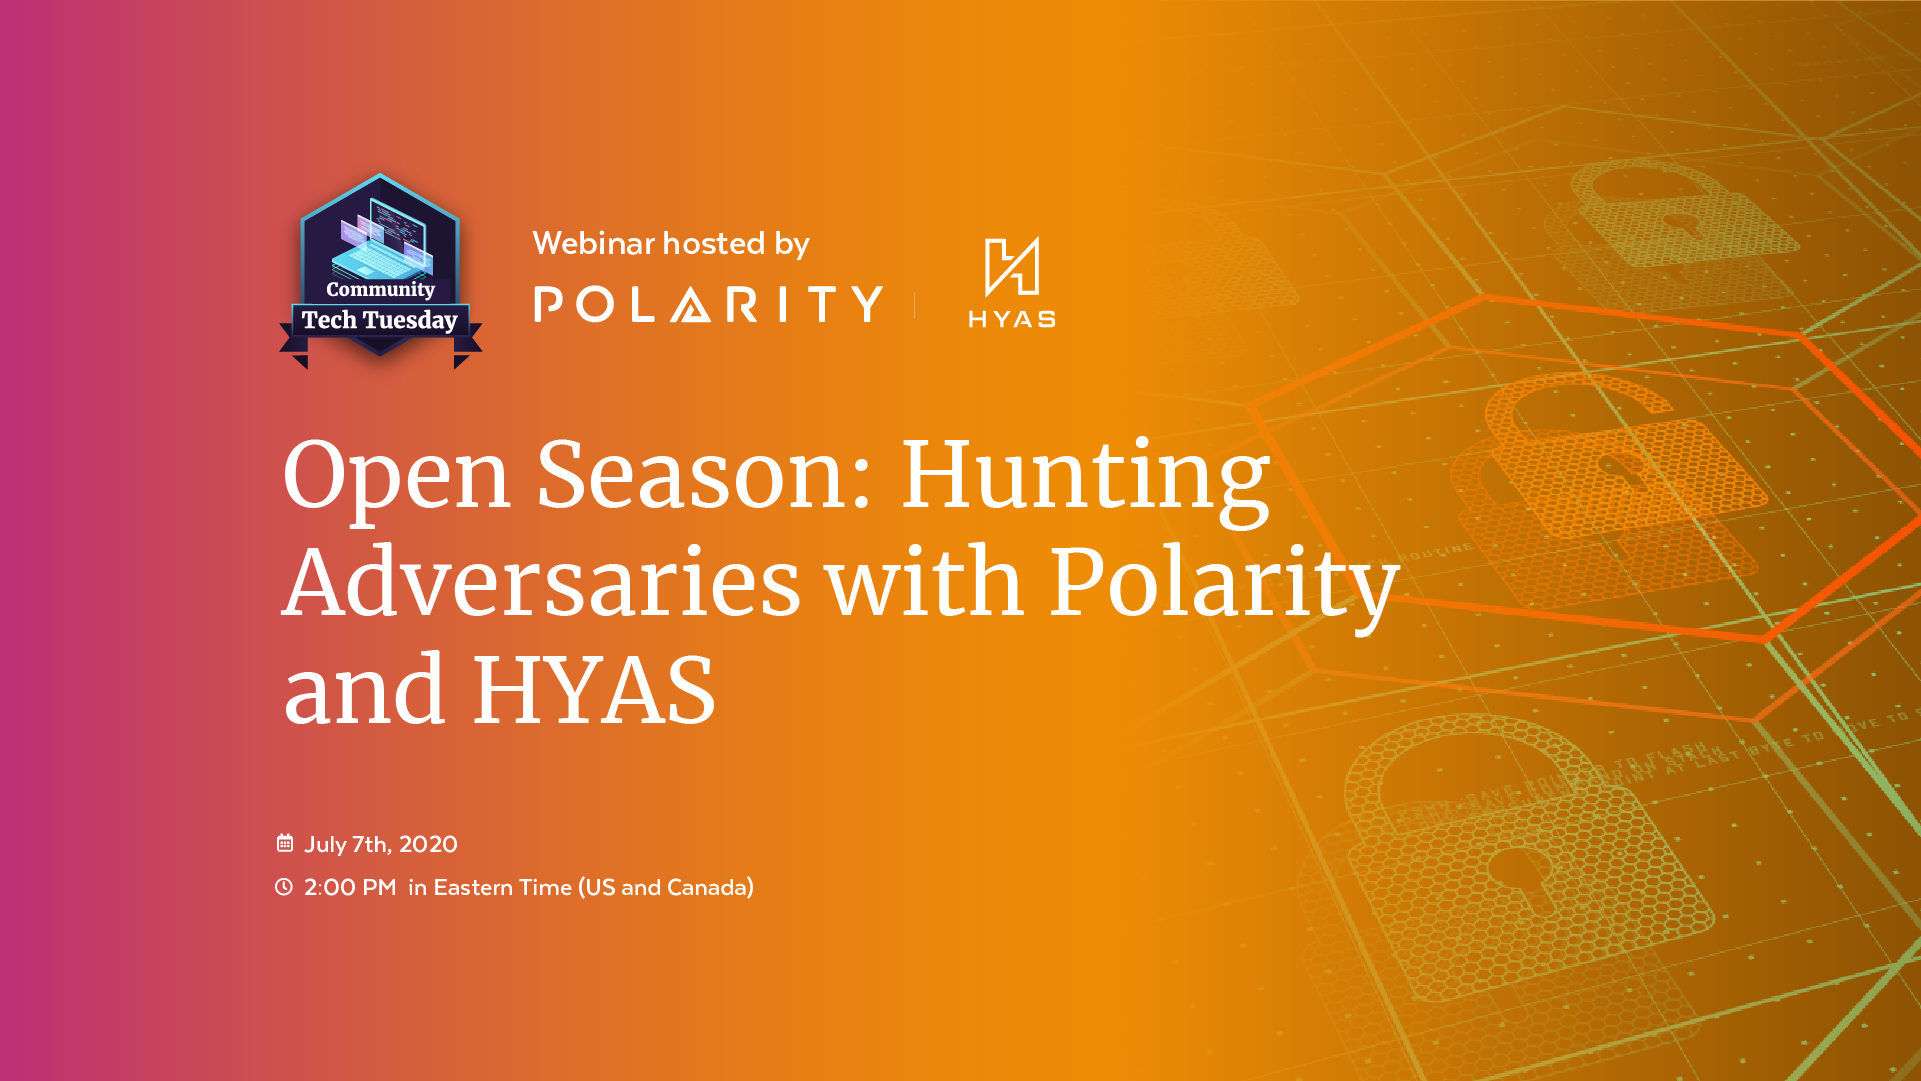 Open Season: Hunting Adversaries with Polarity and HYAS cover image